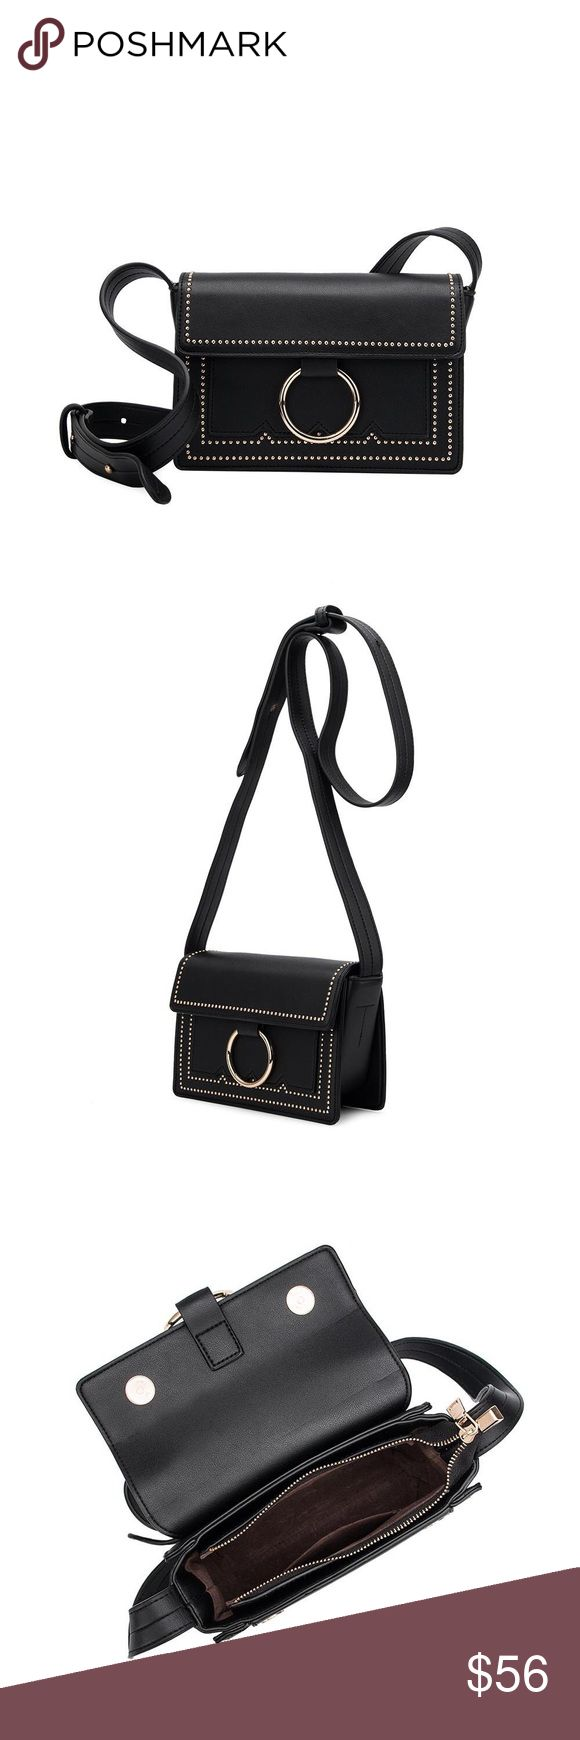 "Cherie Mini Studded Crossbody Melie Bianco  Premium Vegan Leather Fold Over Snap Closure Middle Zipper Front Slim Pockets Interior Zipper Pocket Dimensions: 8.5""L x 6""H x 3""W Colors: Black Melie Bianco Bags Crossbody Bags"